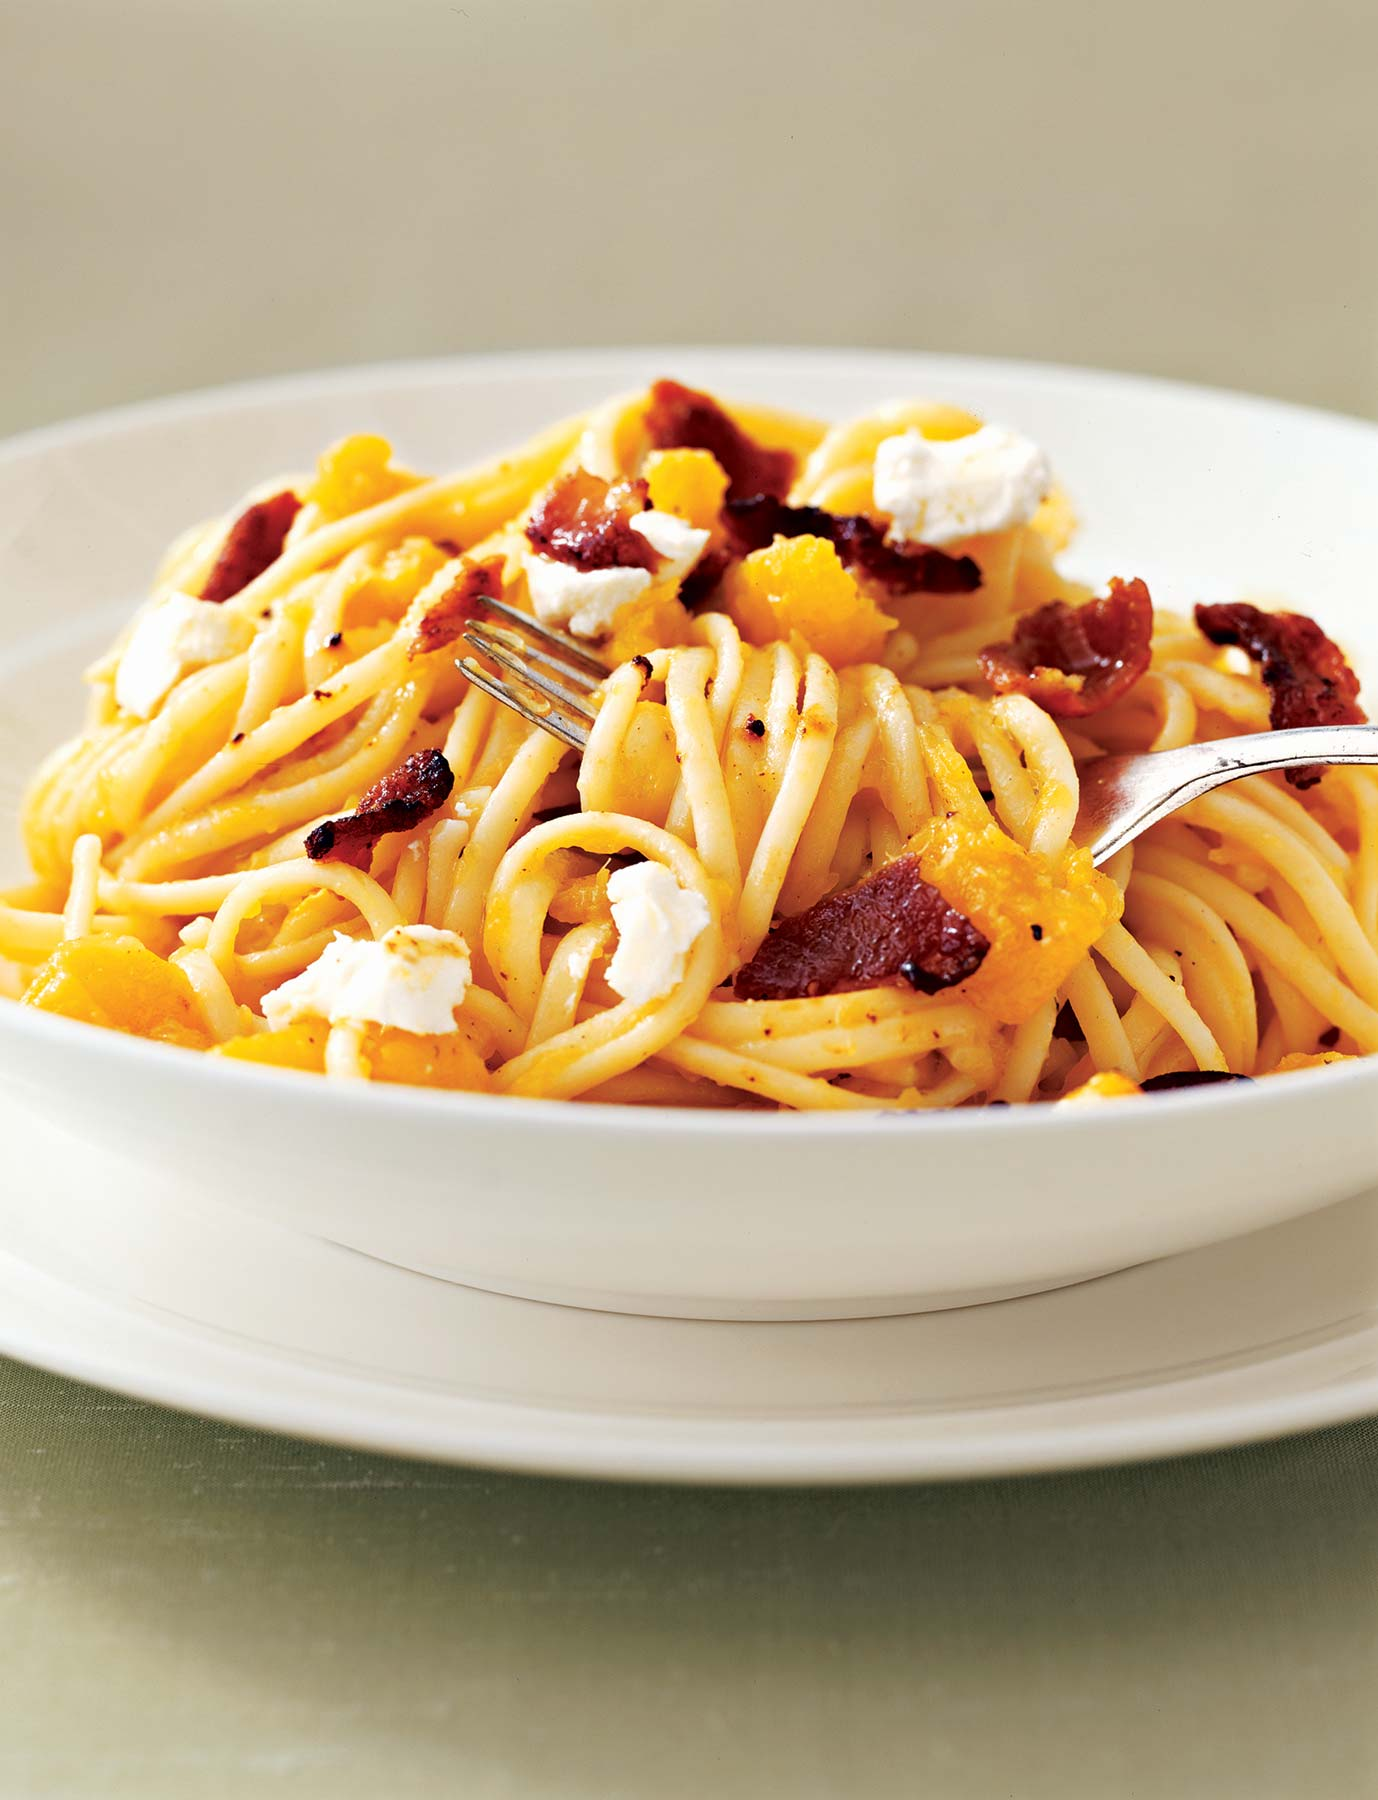 Linguine With Squash, Bacon, and Goat Cheese